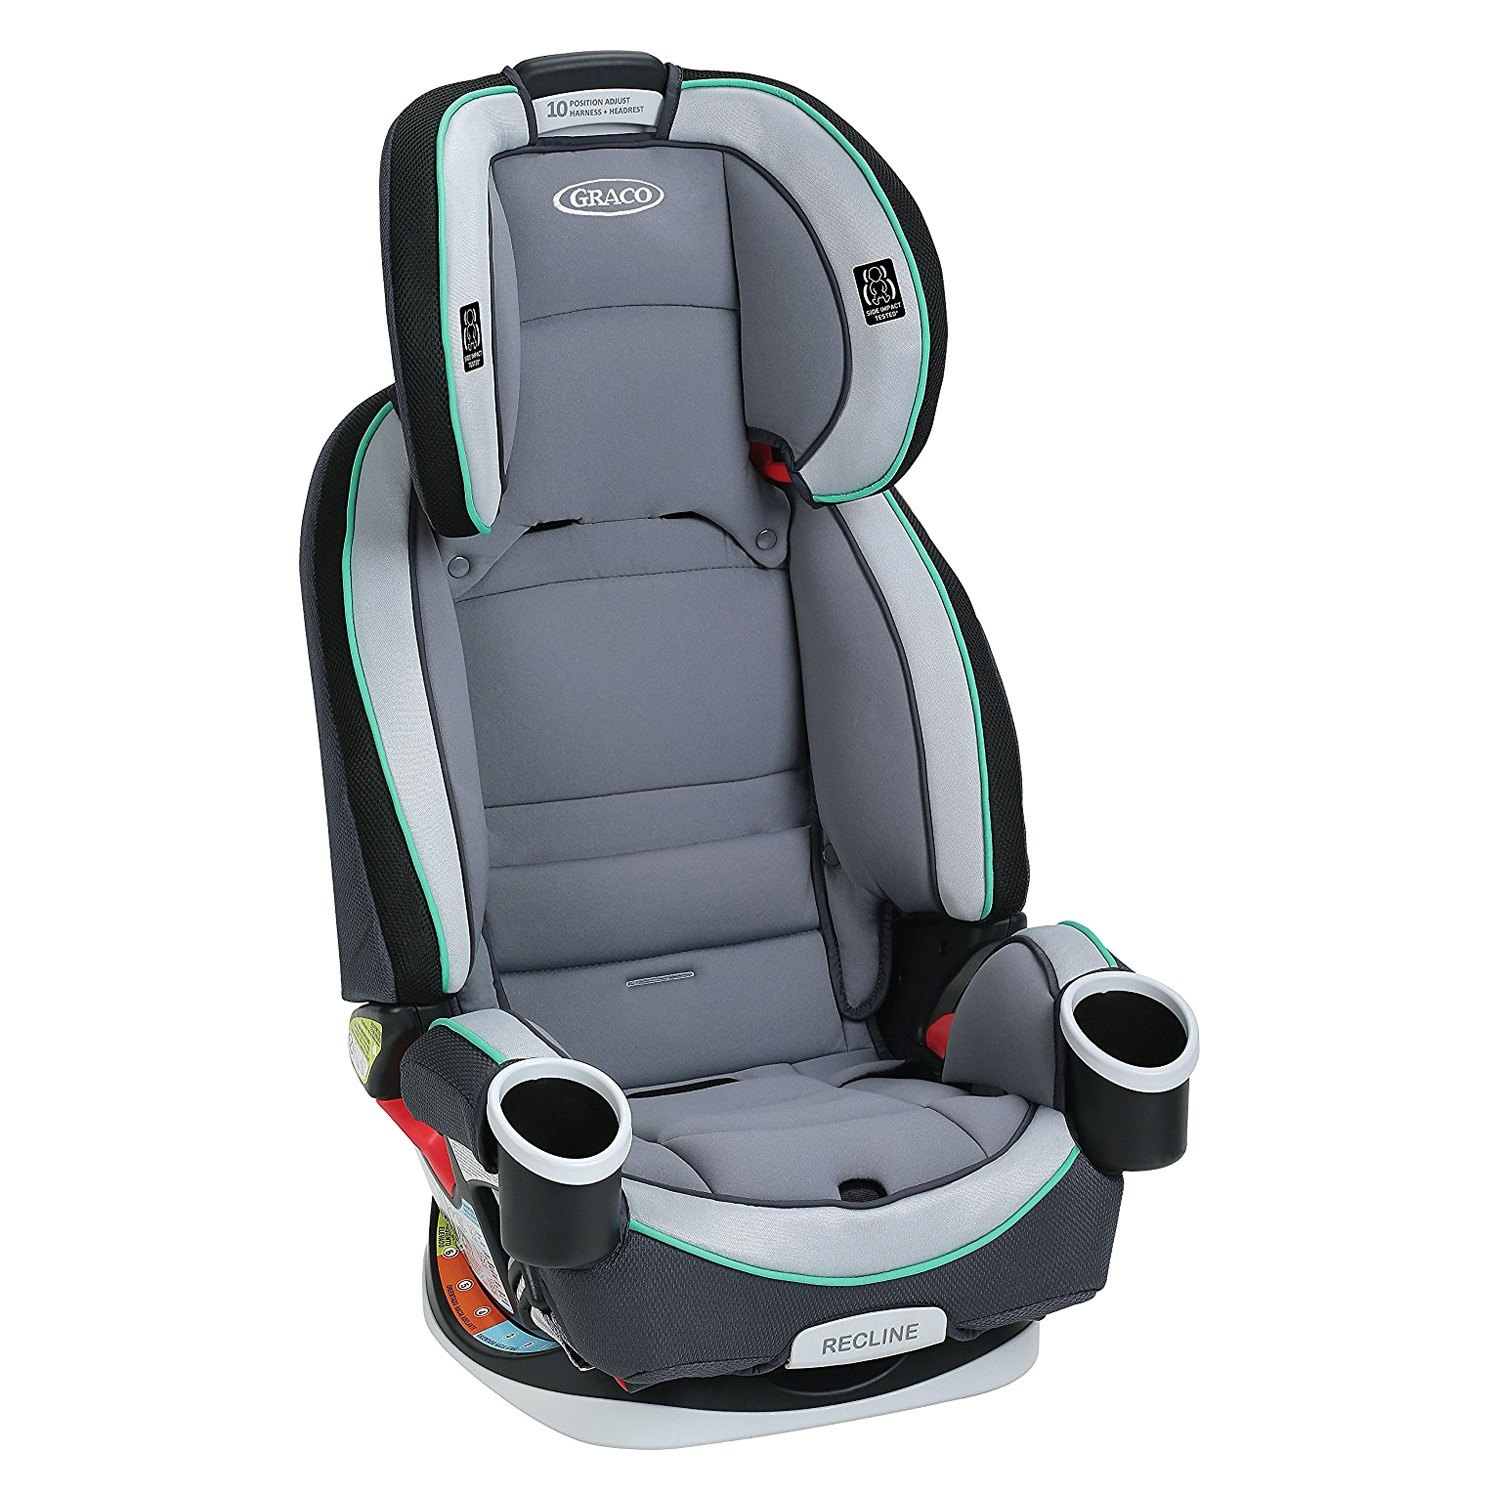 ... Baby® - 4Ever™ Basin Style All-in-1 Car SeatGraco ...  sc 1 st  CARiD.com & Graco Baby® - 4Ever™ All-in-1 Car Seat islam-shia.org